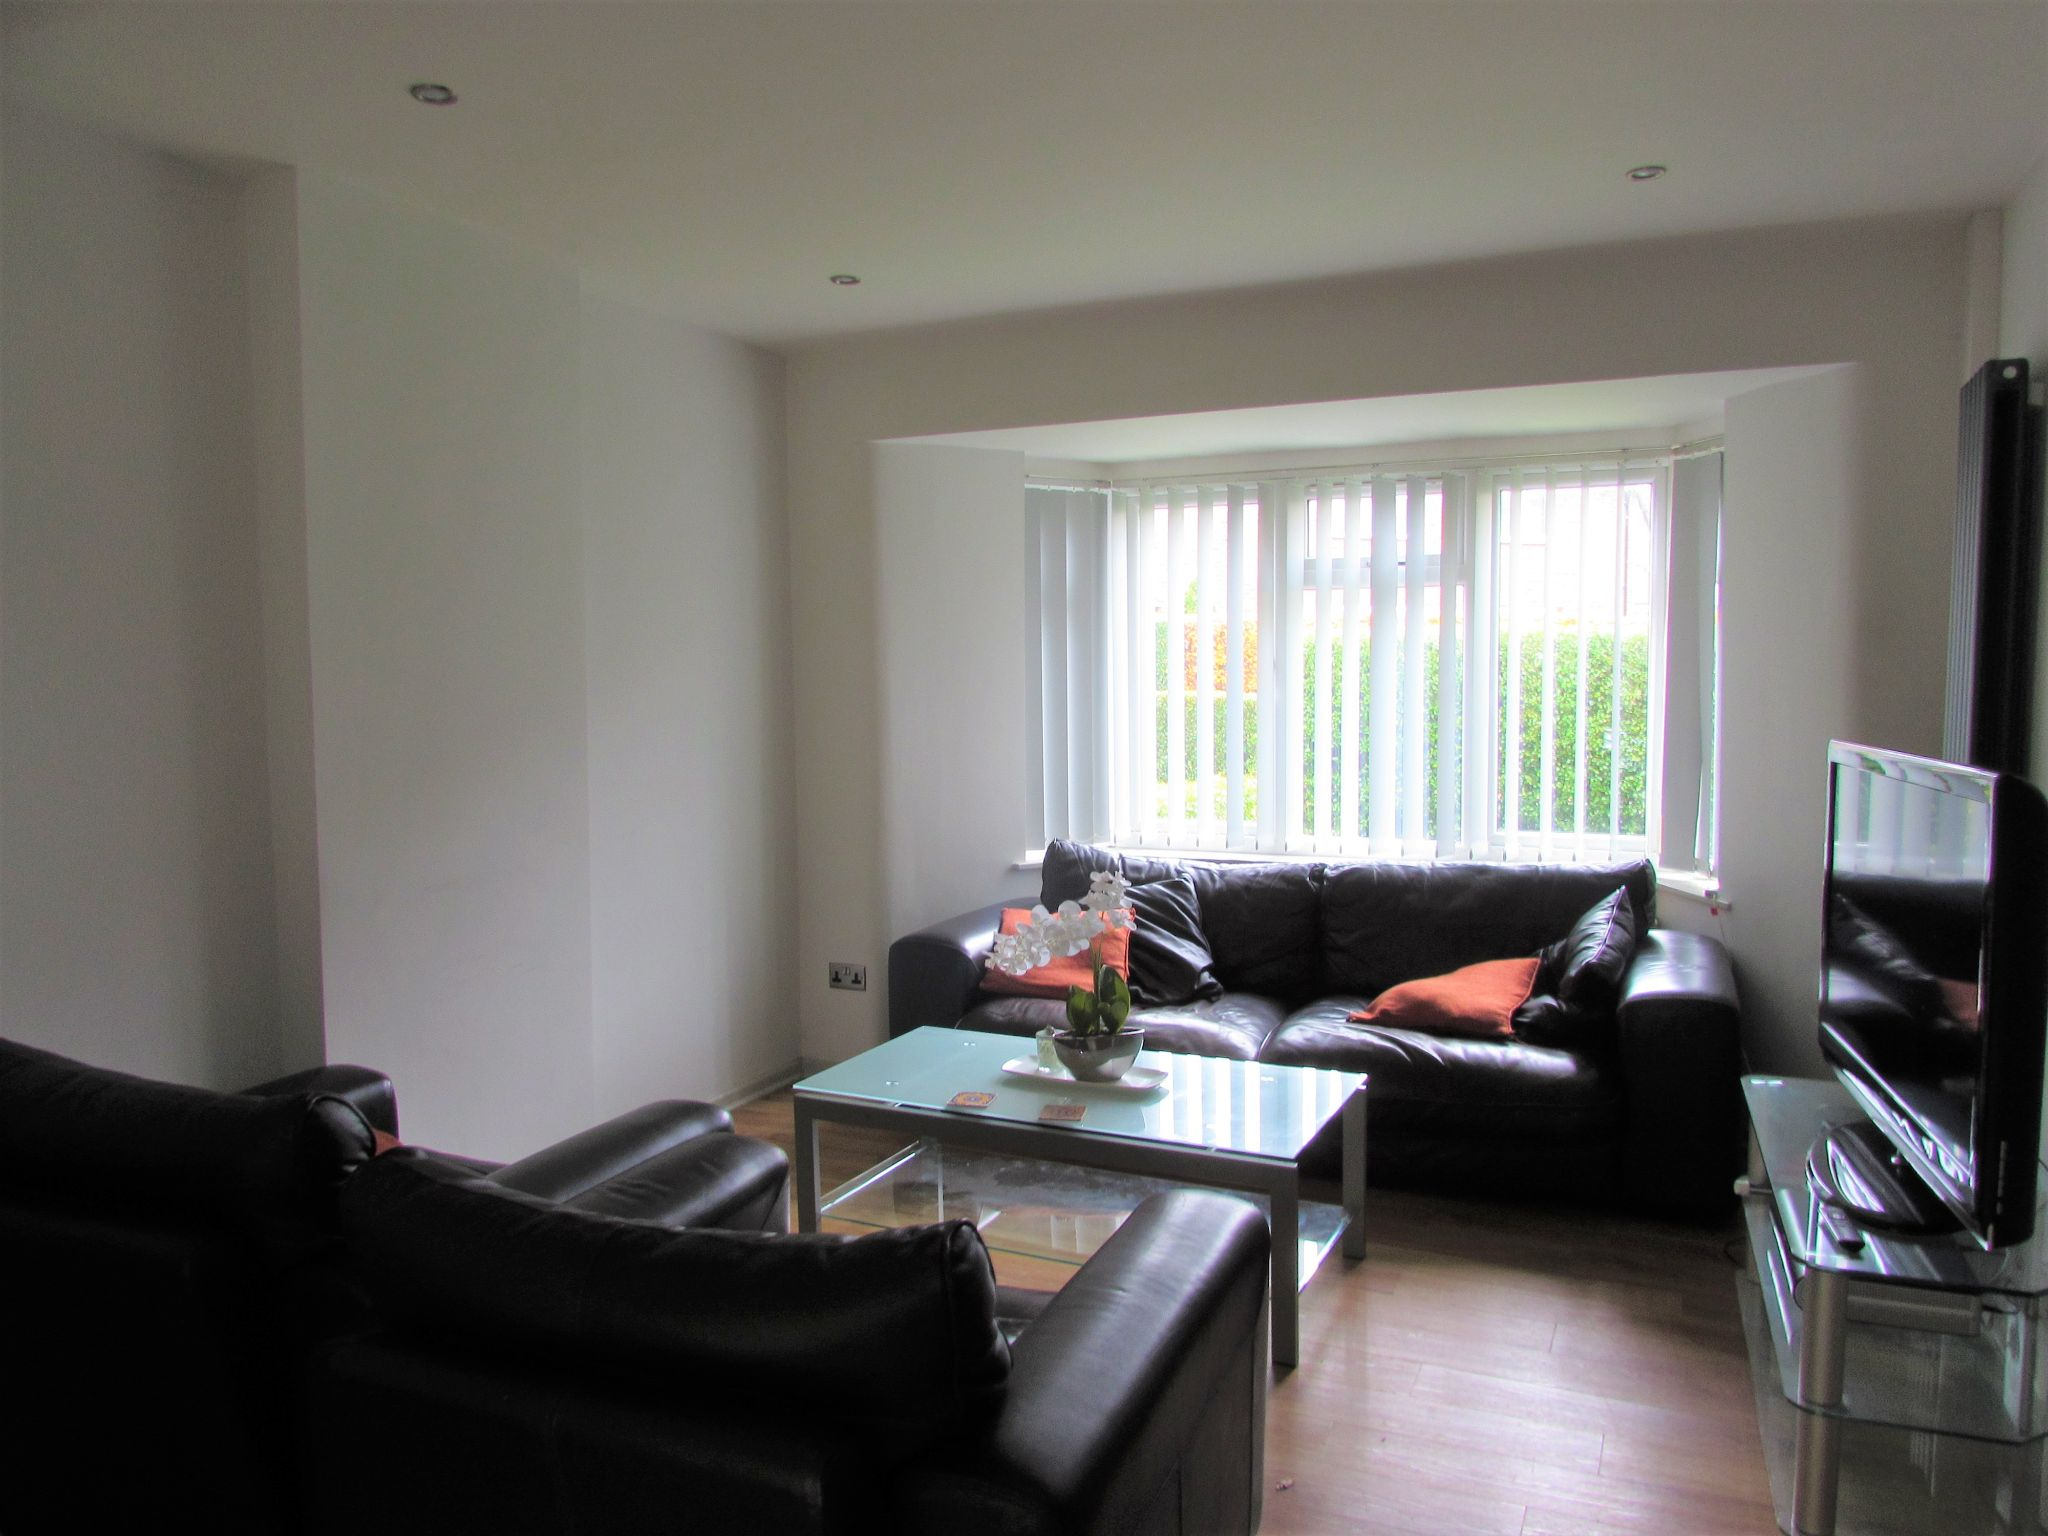 1 Bedroom Semi-detached House To Rent - Photograph 2